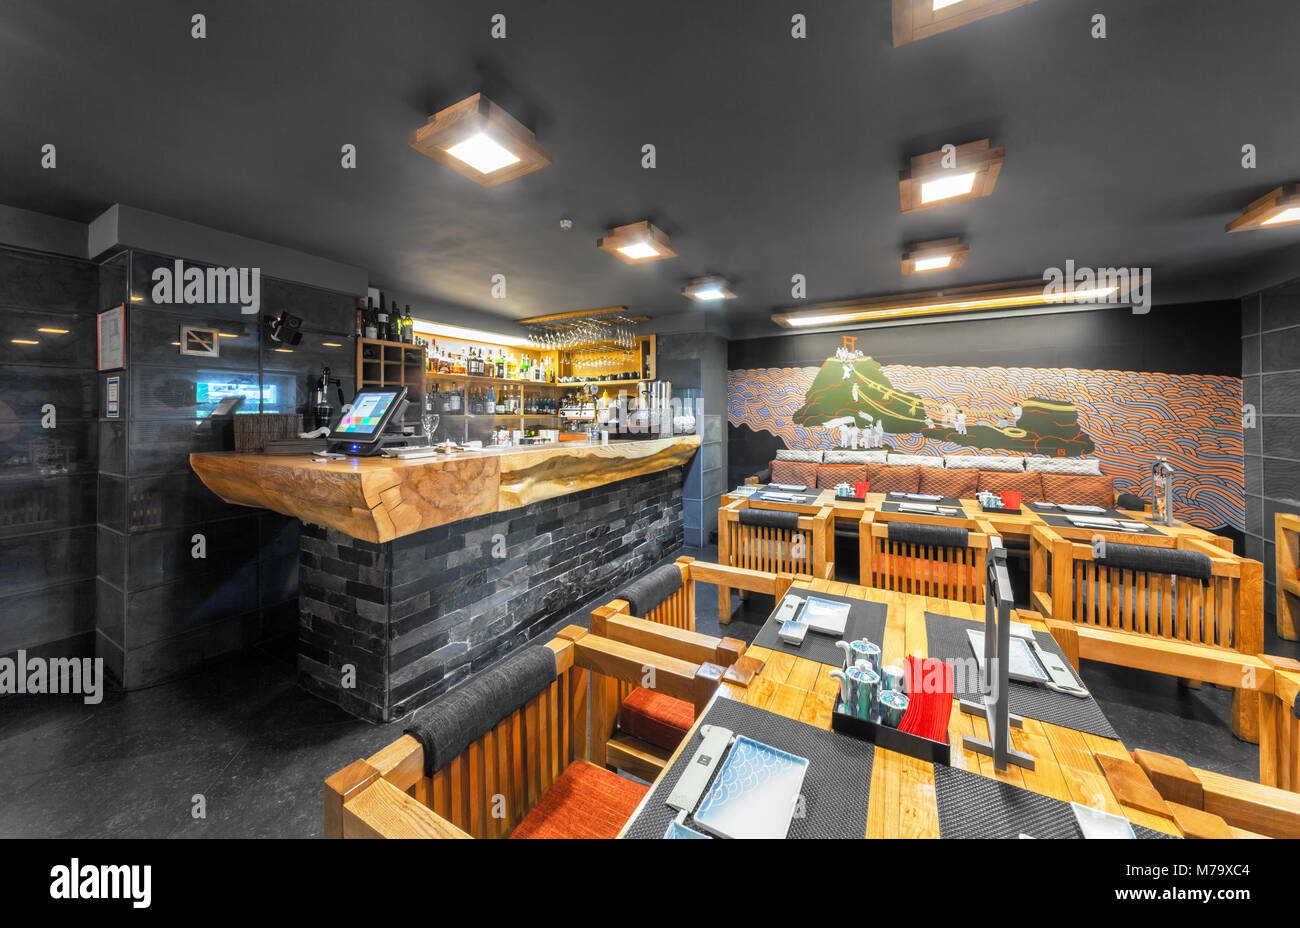 Moscow August 2014 Interior Of The Japanese Restaurant Seiji In Stock Photo Alamy